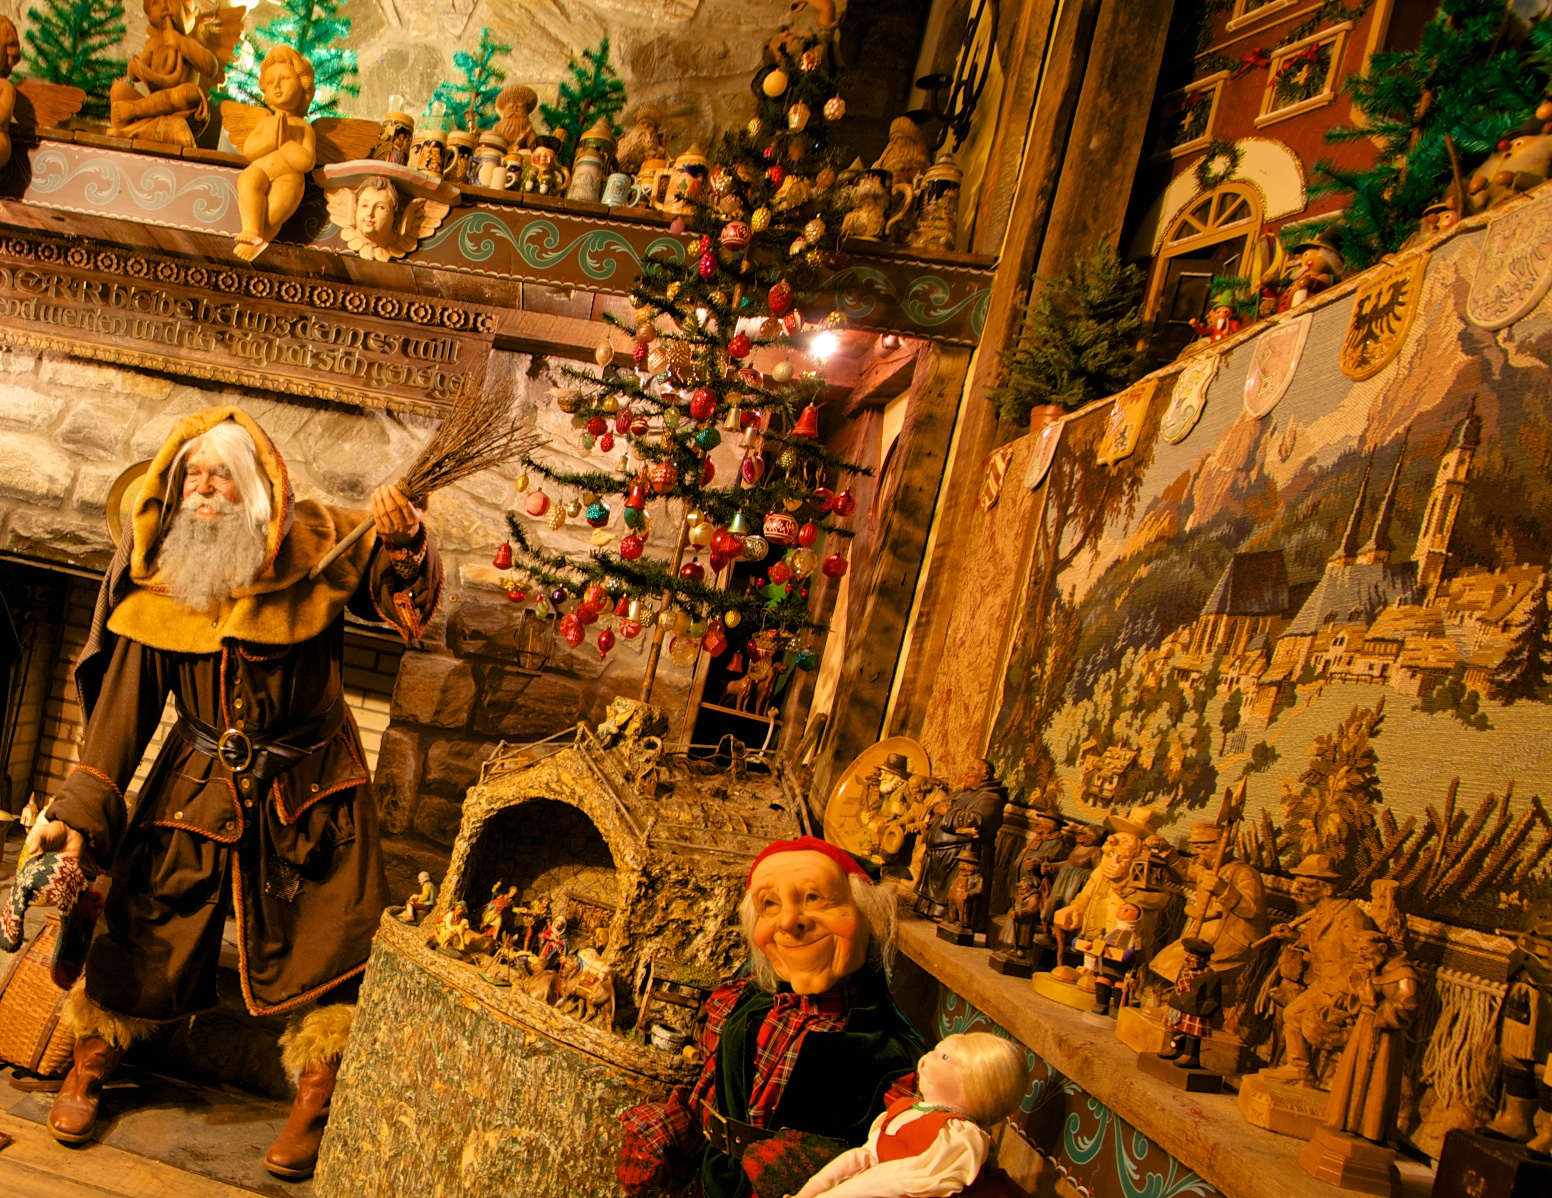 """Figure 2: This exhibit about Christmas traditions in Germany is part of a  Christmas around the World room at the National Christmas Center and Museum. The life-sized figure of the Weihnachtsmann (""""Christmas Man"""") bears more than a passing resemblance to Jim Morrison, founder and curator of the museum. Jim and several others were used as models for some of the figures."""